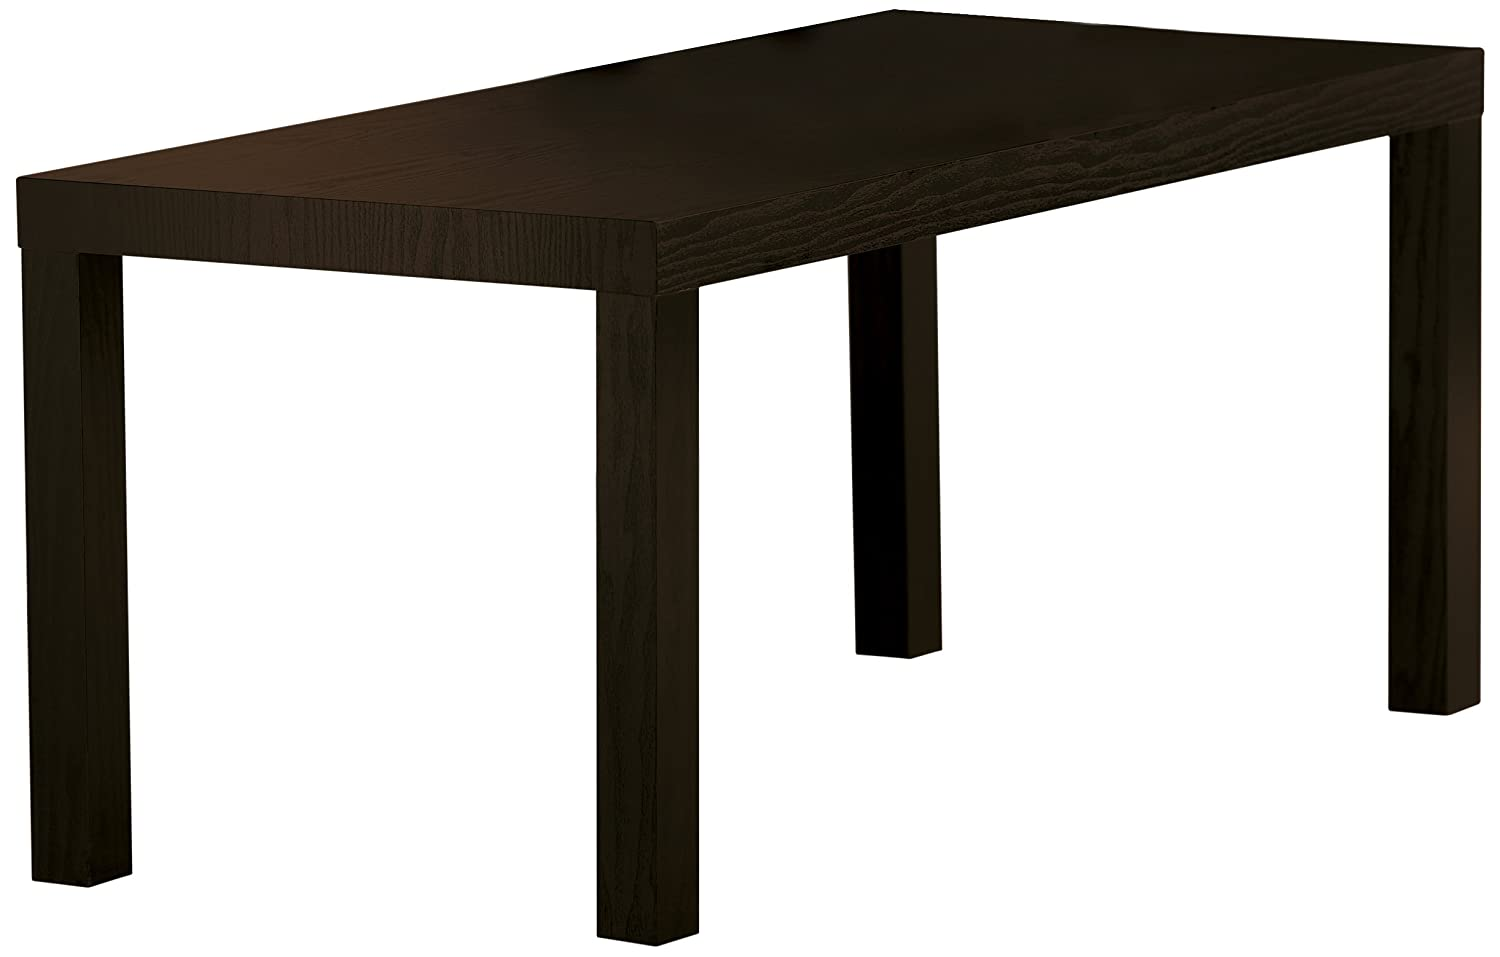 DHP Parsons Modern Coffee Table, Black Wood Grain